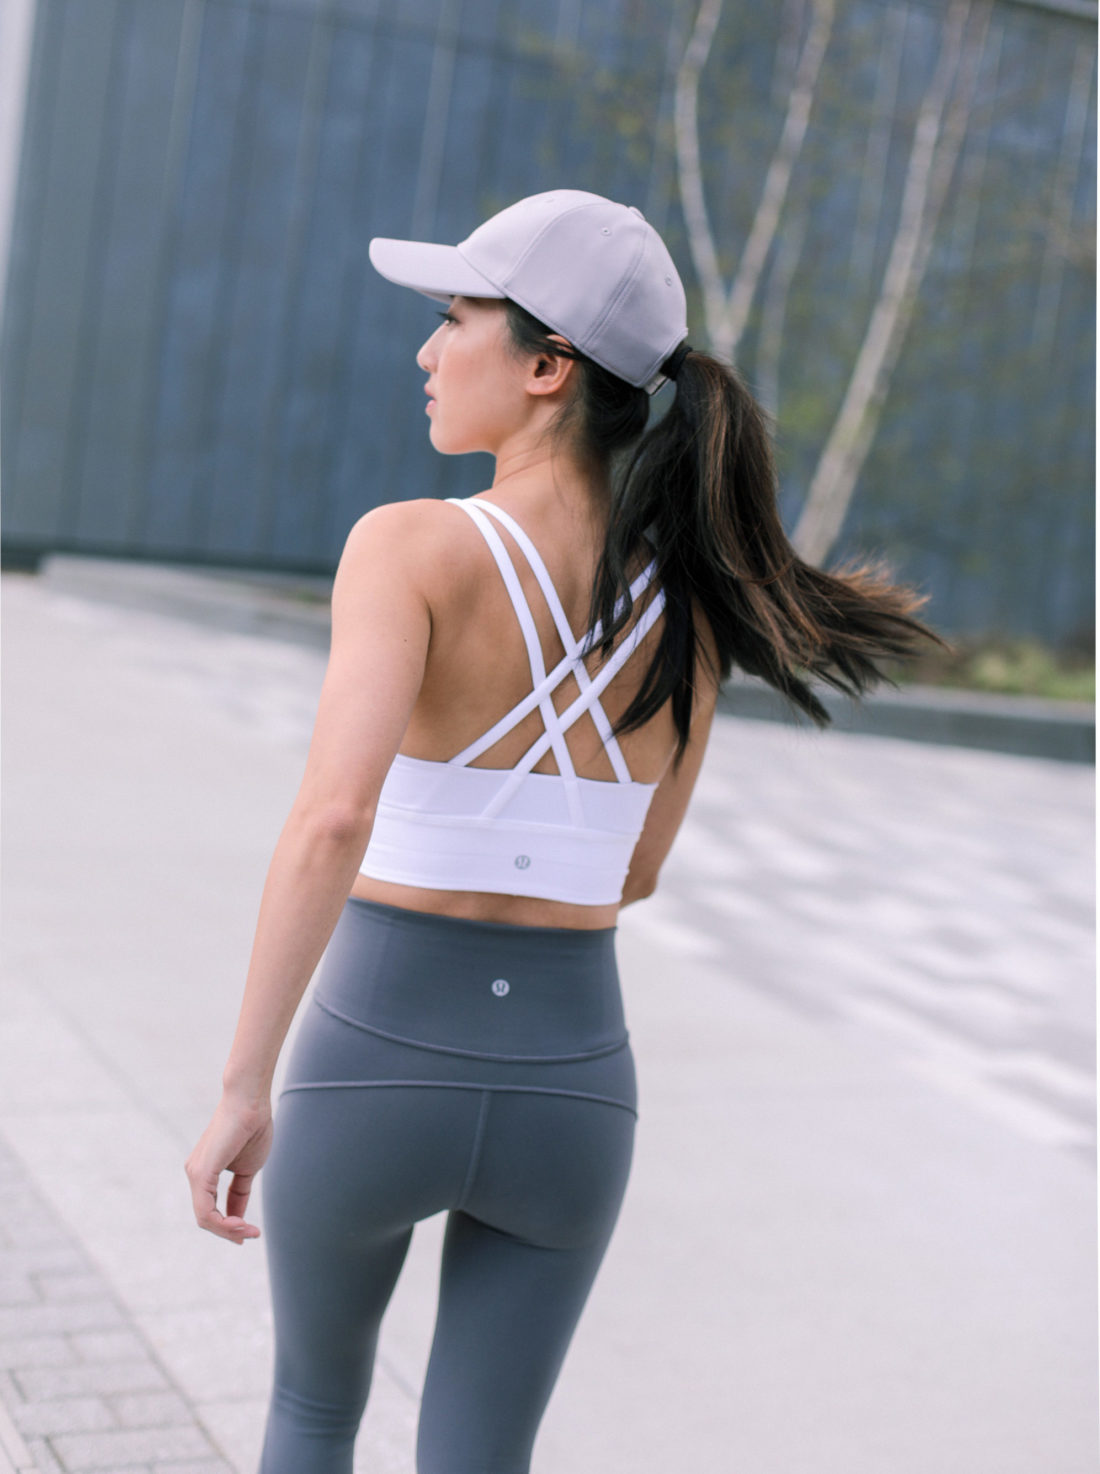 lululemon sports bra reviews for petite women